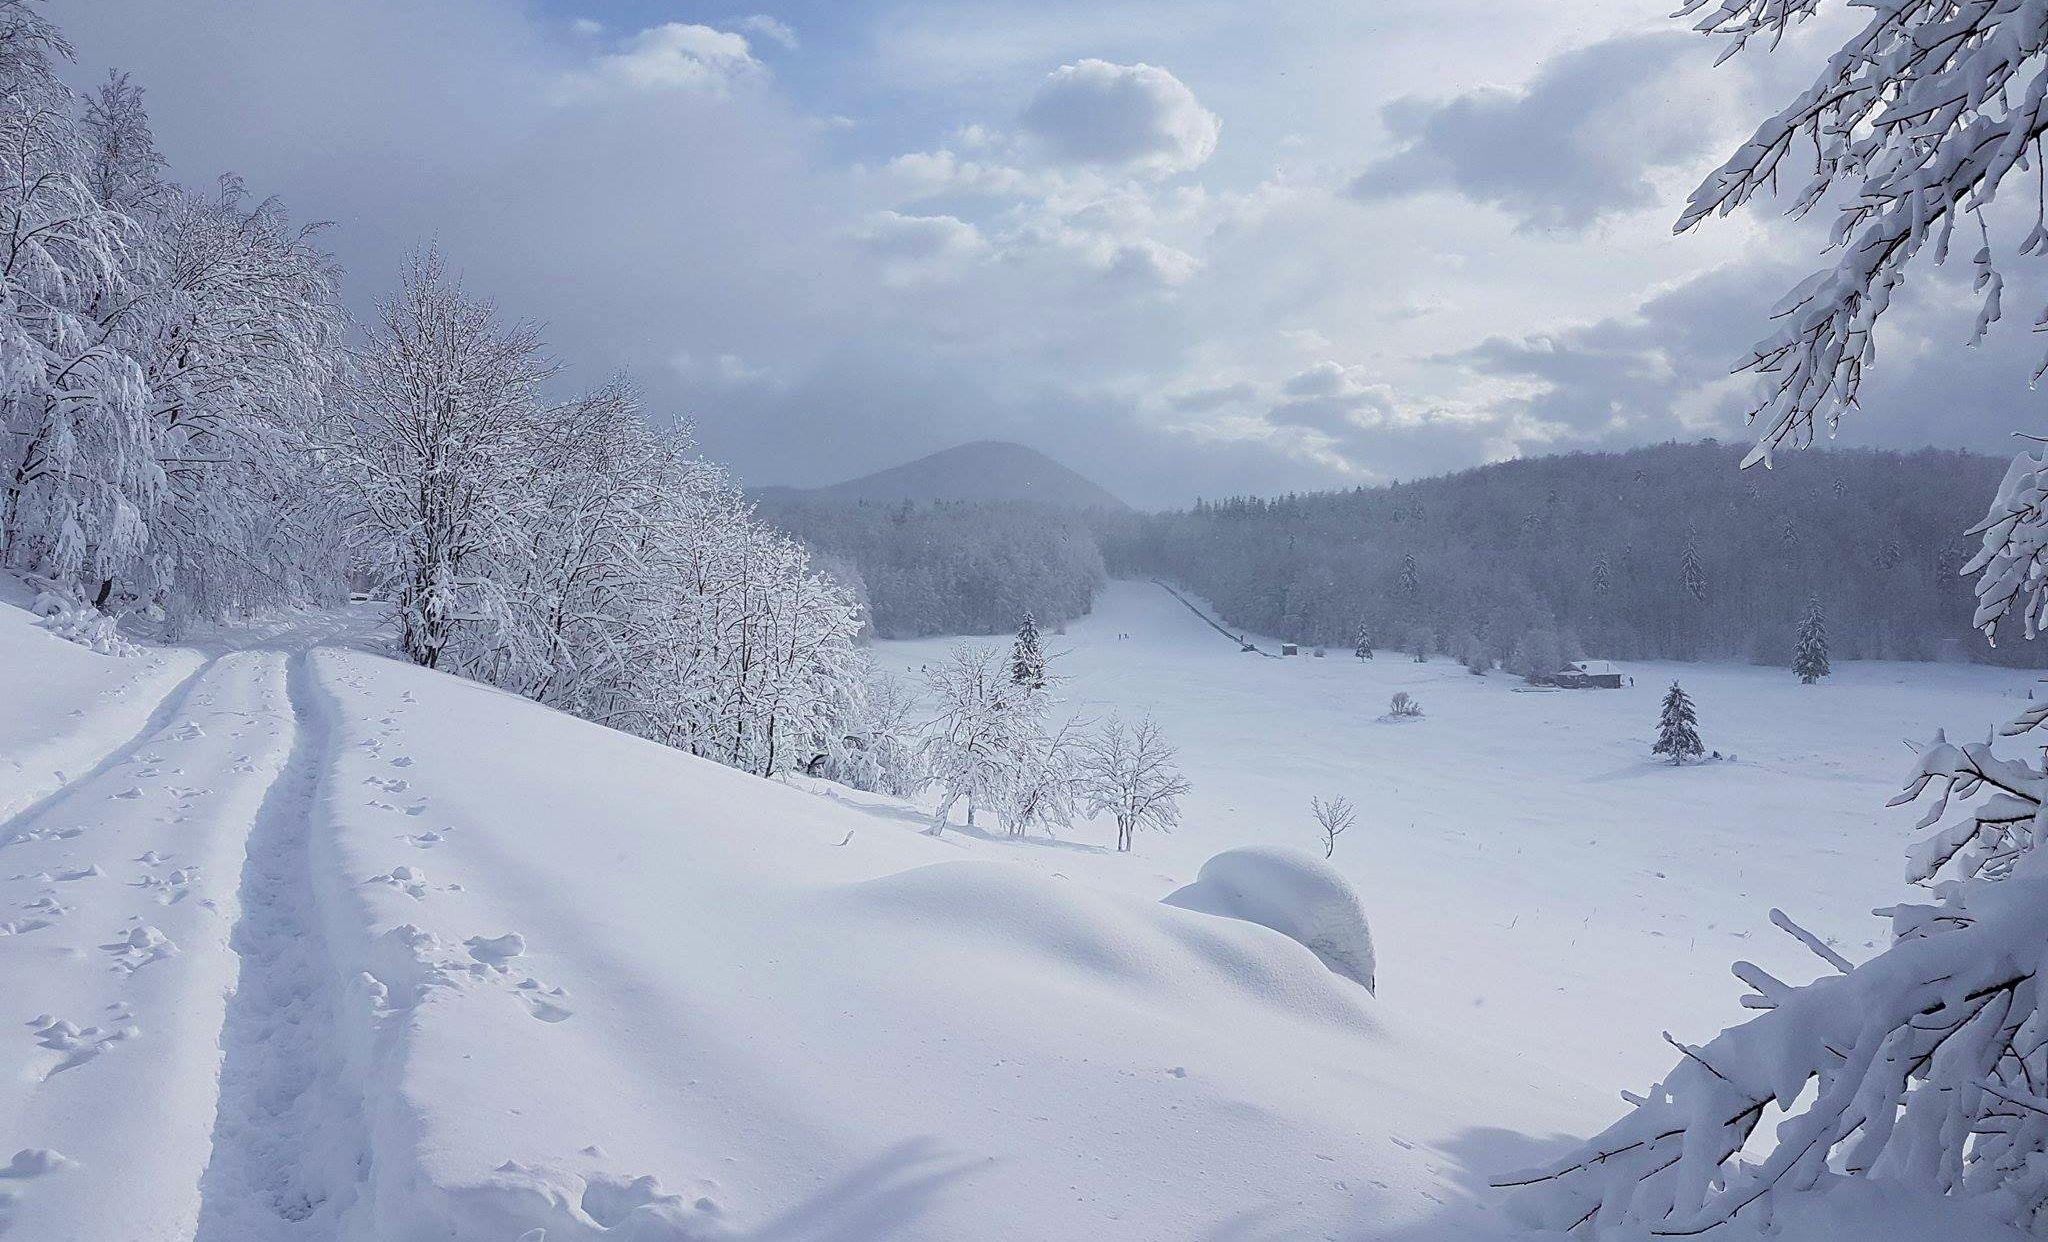 Over 50 cm fell on Platak (photo credit: Mauro Kesovija / Istramet)